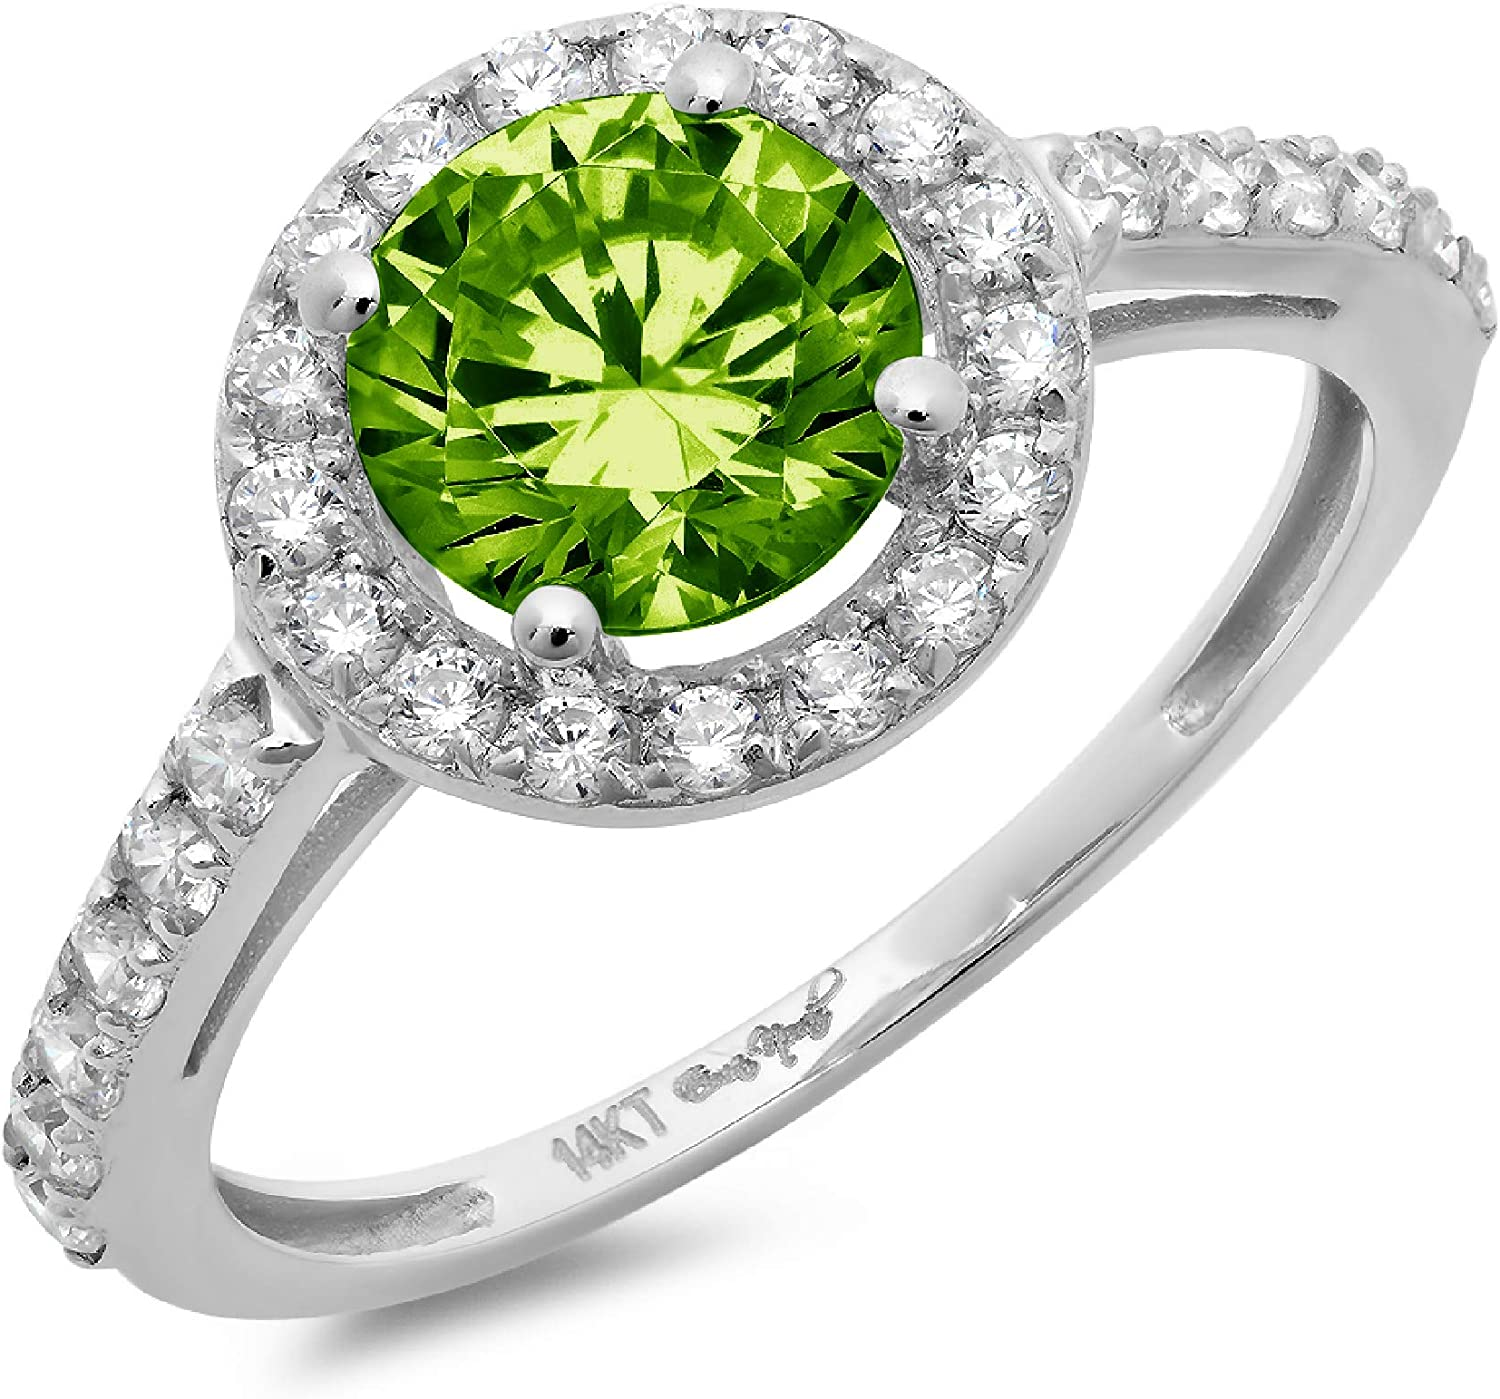 2.40 ct Brilliant Round Cut Solitaire accent Halo Designer Genuine Natural Green Peridot Gemstone Ideal VVS1 Engagement Promise Statement Anniversary Bridal Wedding Ring 14k White Gold